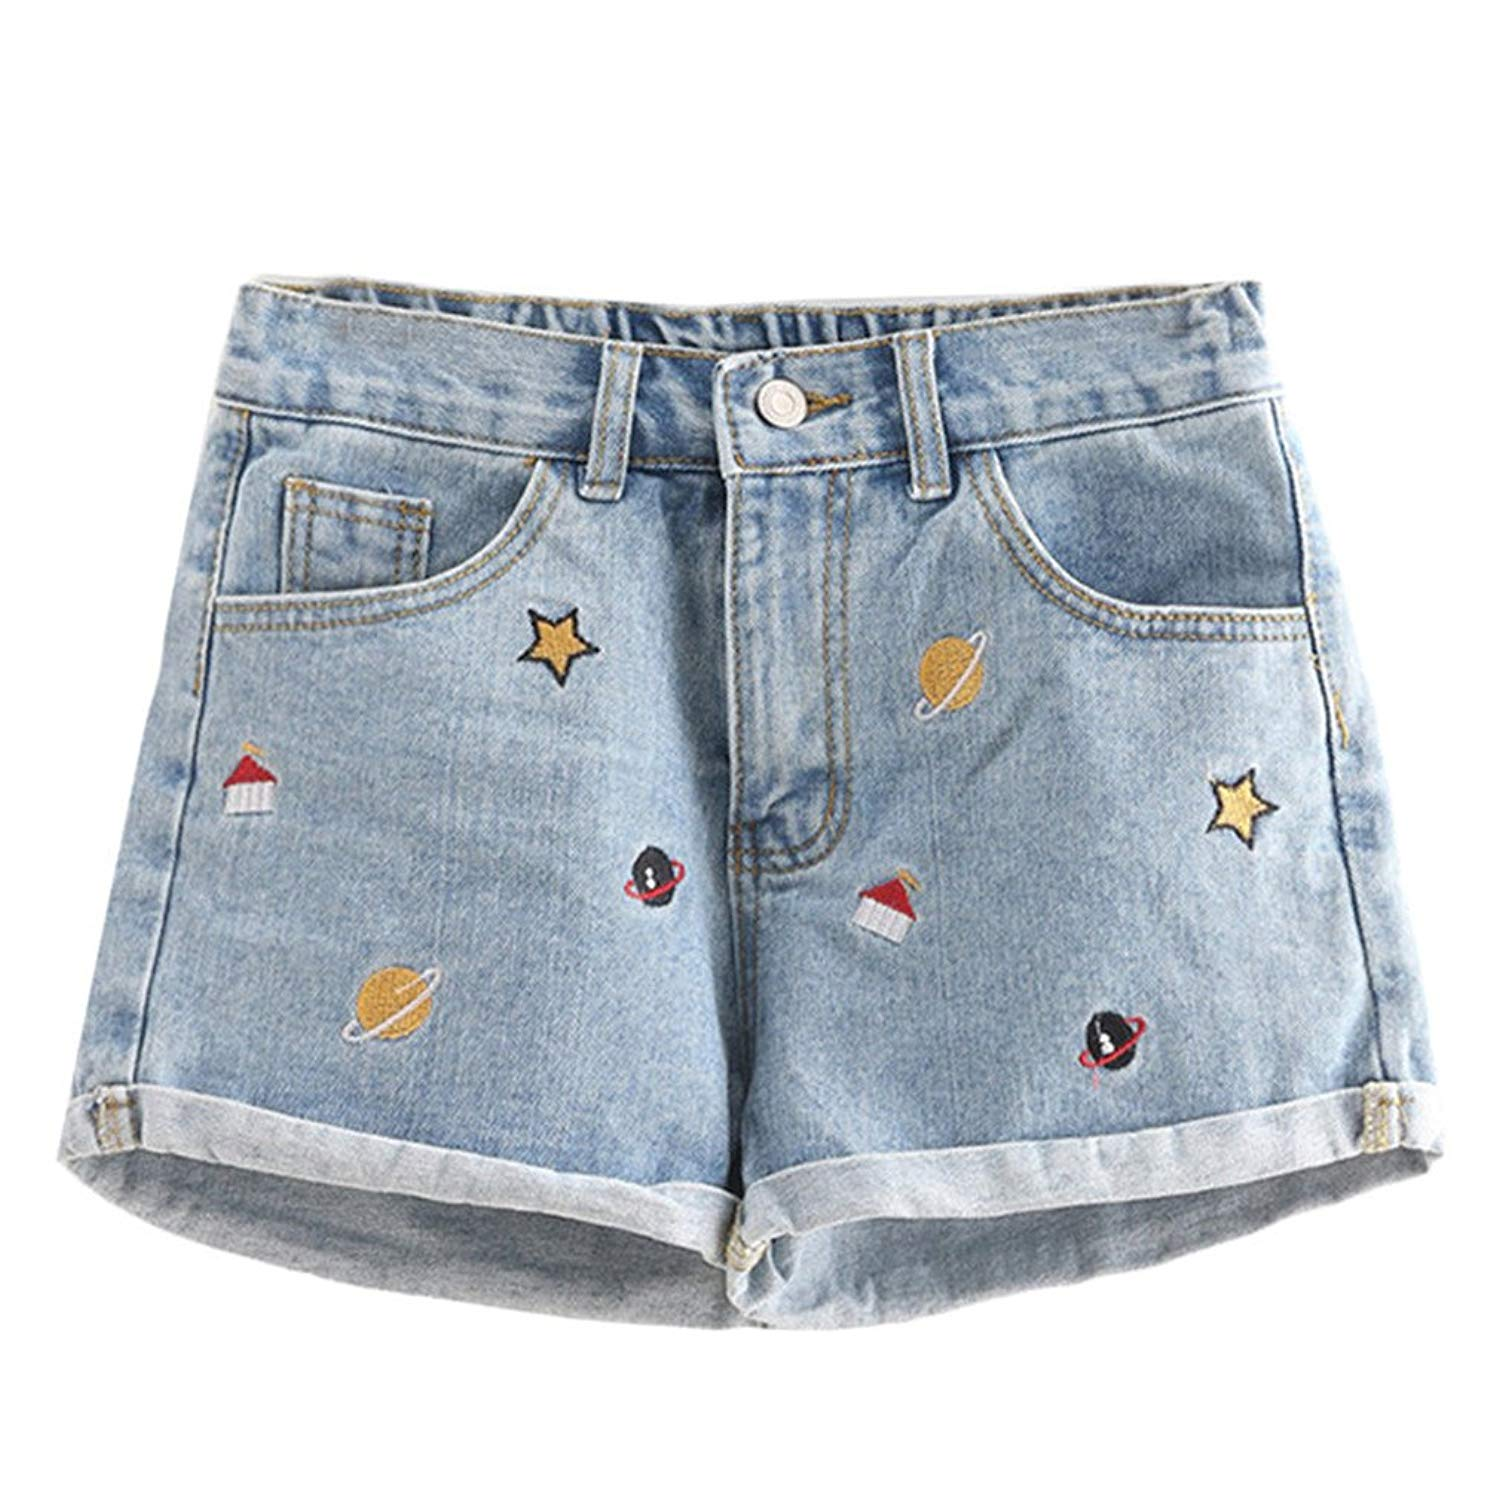 4c10d3f946 Get Quotations · Summer Shorts Mini Denim Shorts Vintage Beach Wear  Embroidered Denim Shorts